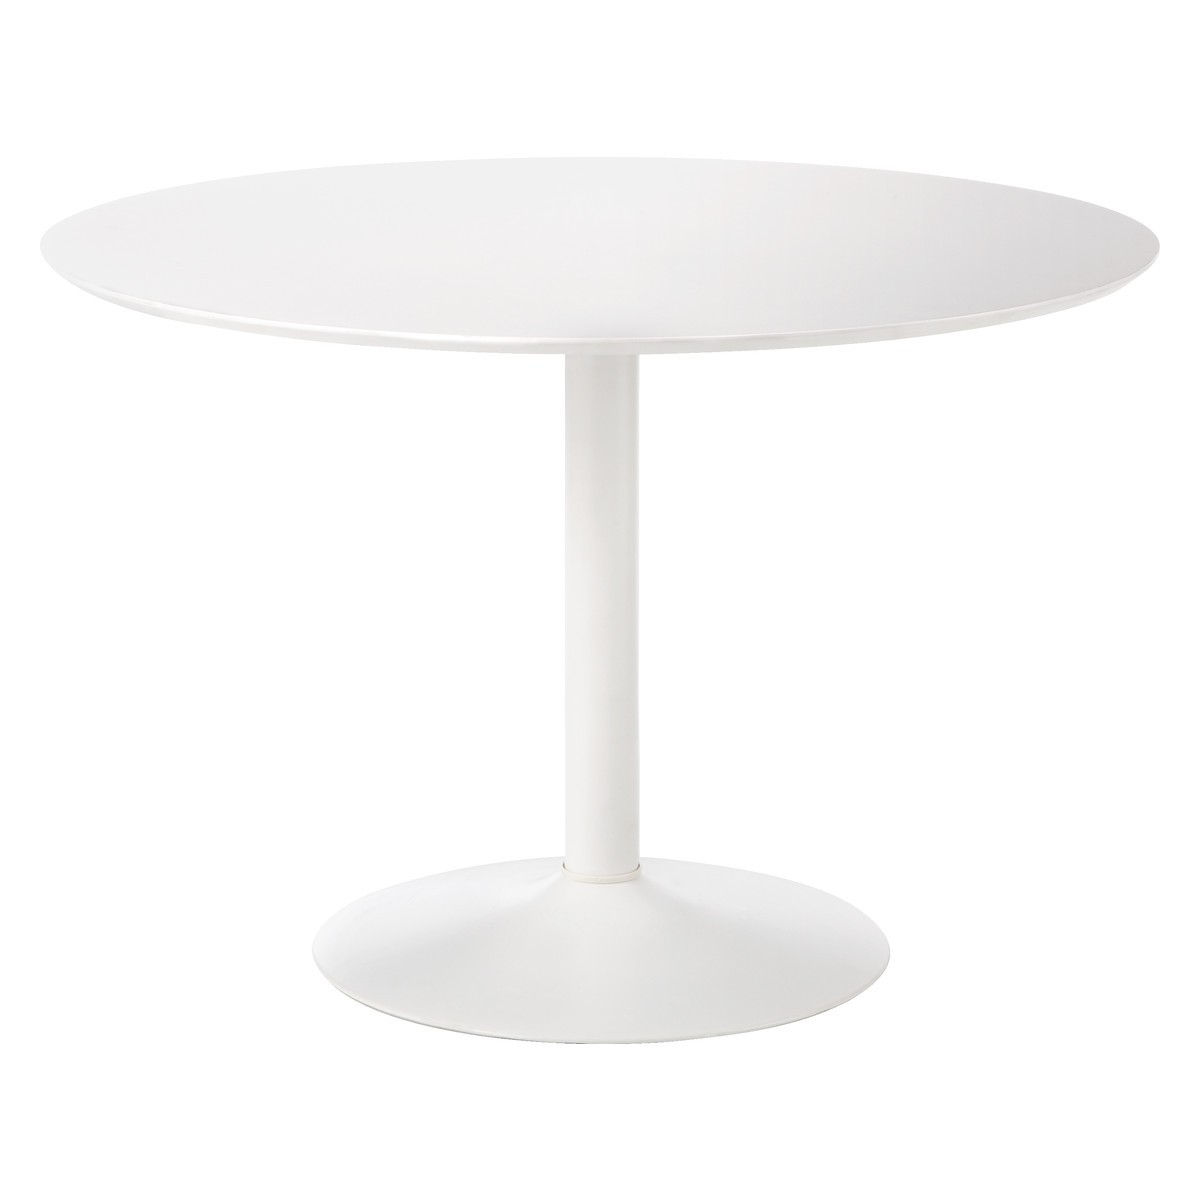 Buy Now At Habitat Uk Throughout Preferred Small Round White Dining Tables (Gallery 5 of 25)